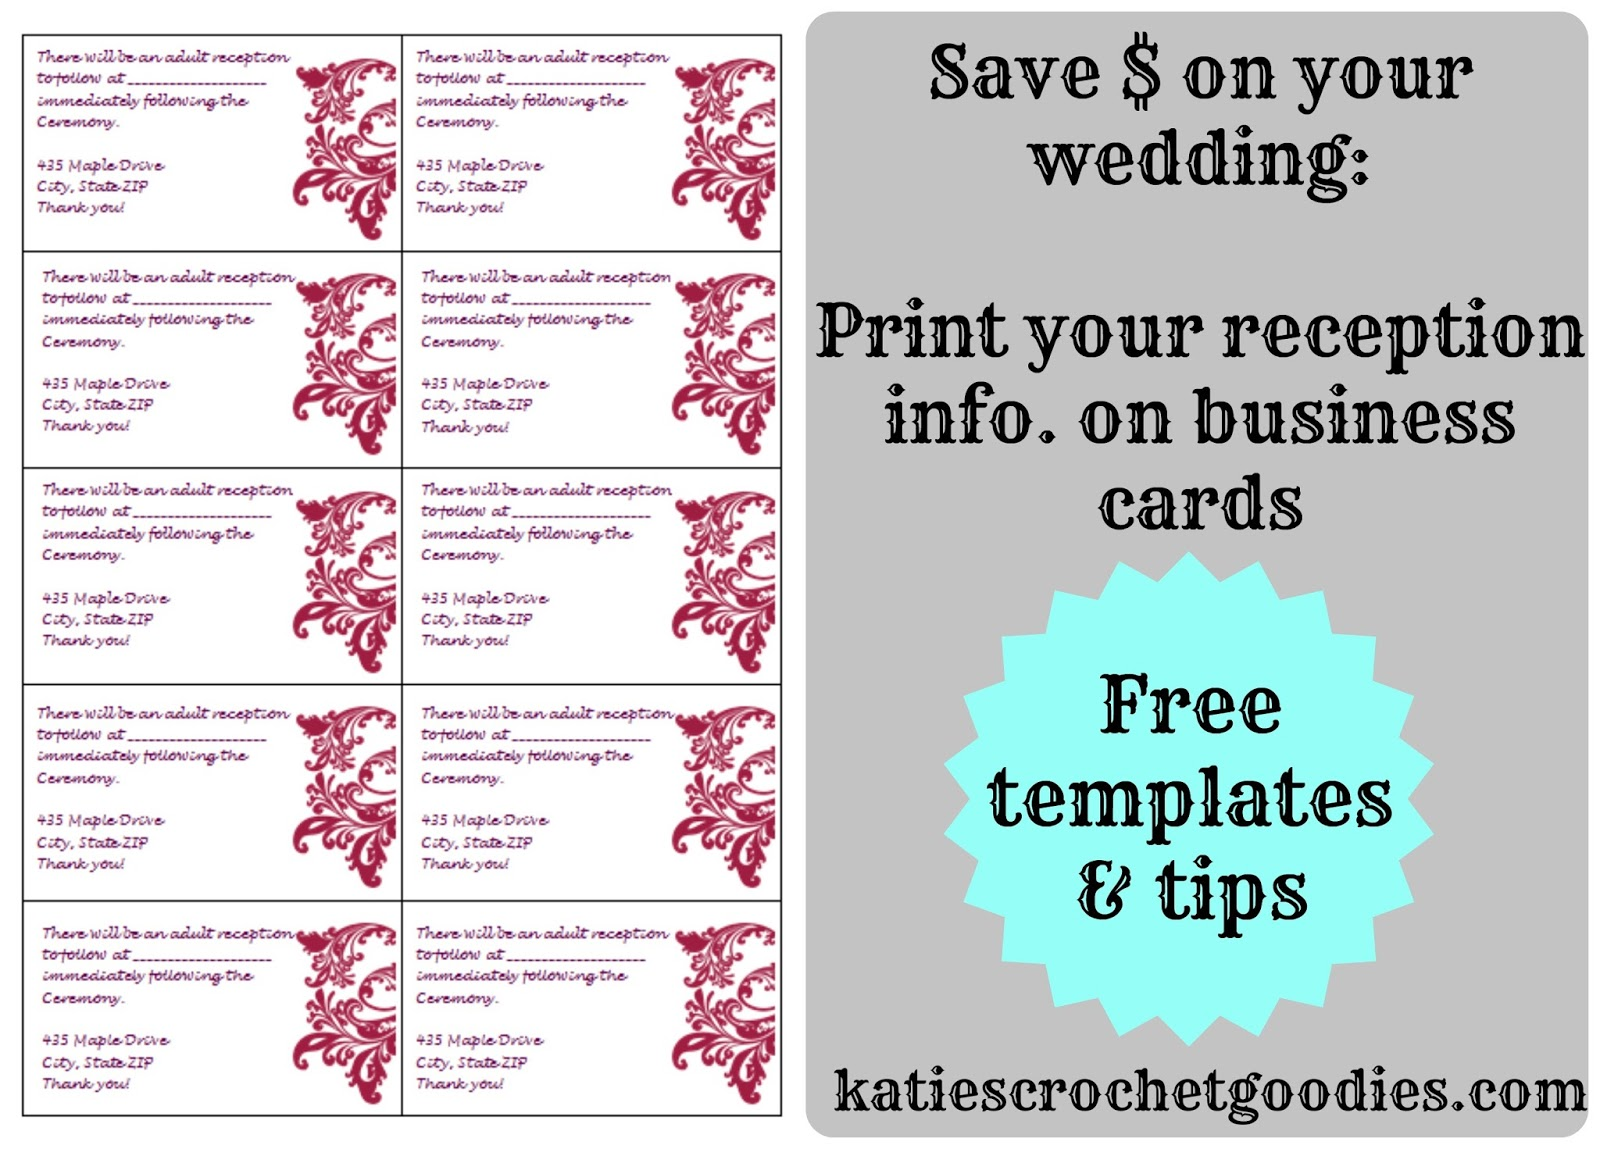 free wedding templates rsvp reception cards katie 39 s crochet goodies. Black Bedroom Furniture Sets. Home Design Ideas